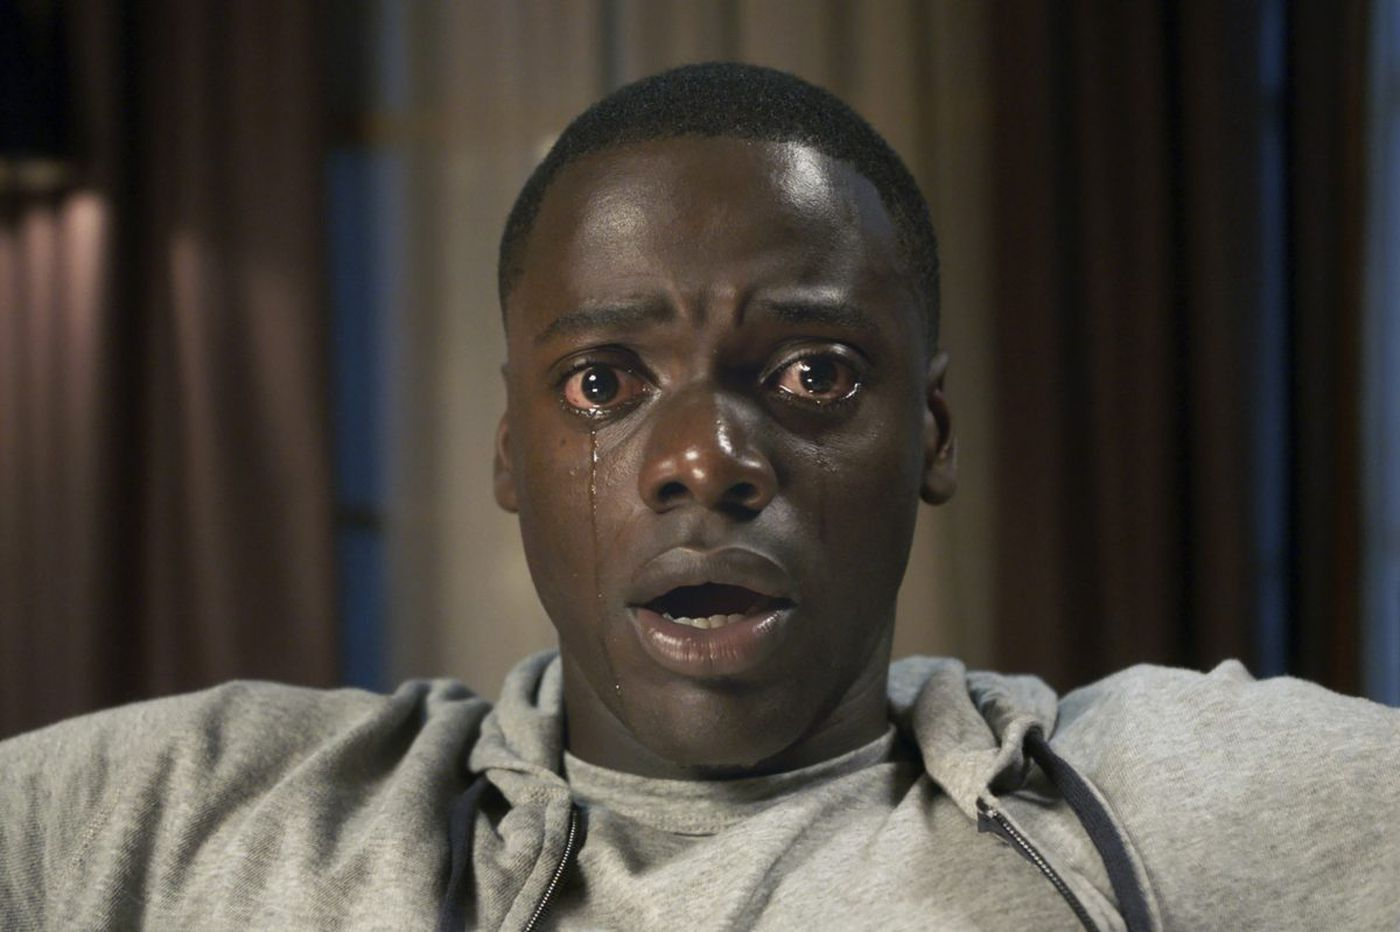 'Get Out' will screen free at some AMC theaters on Presidents Day